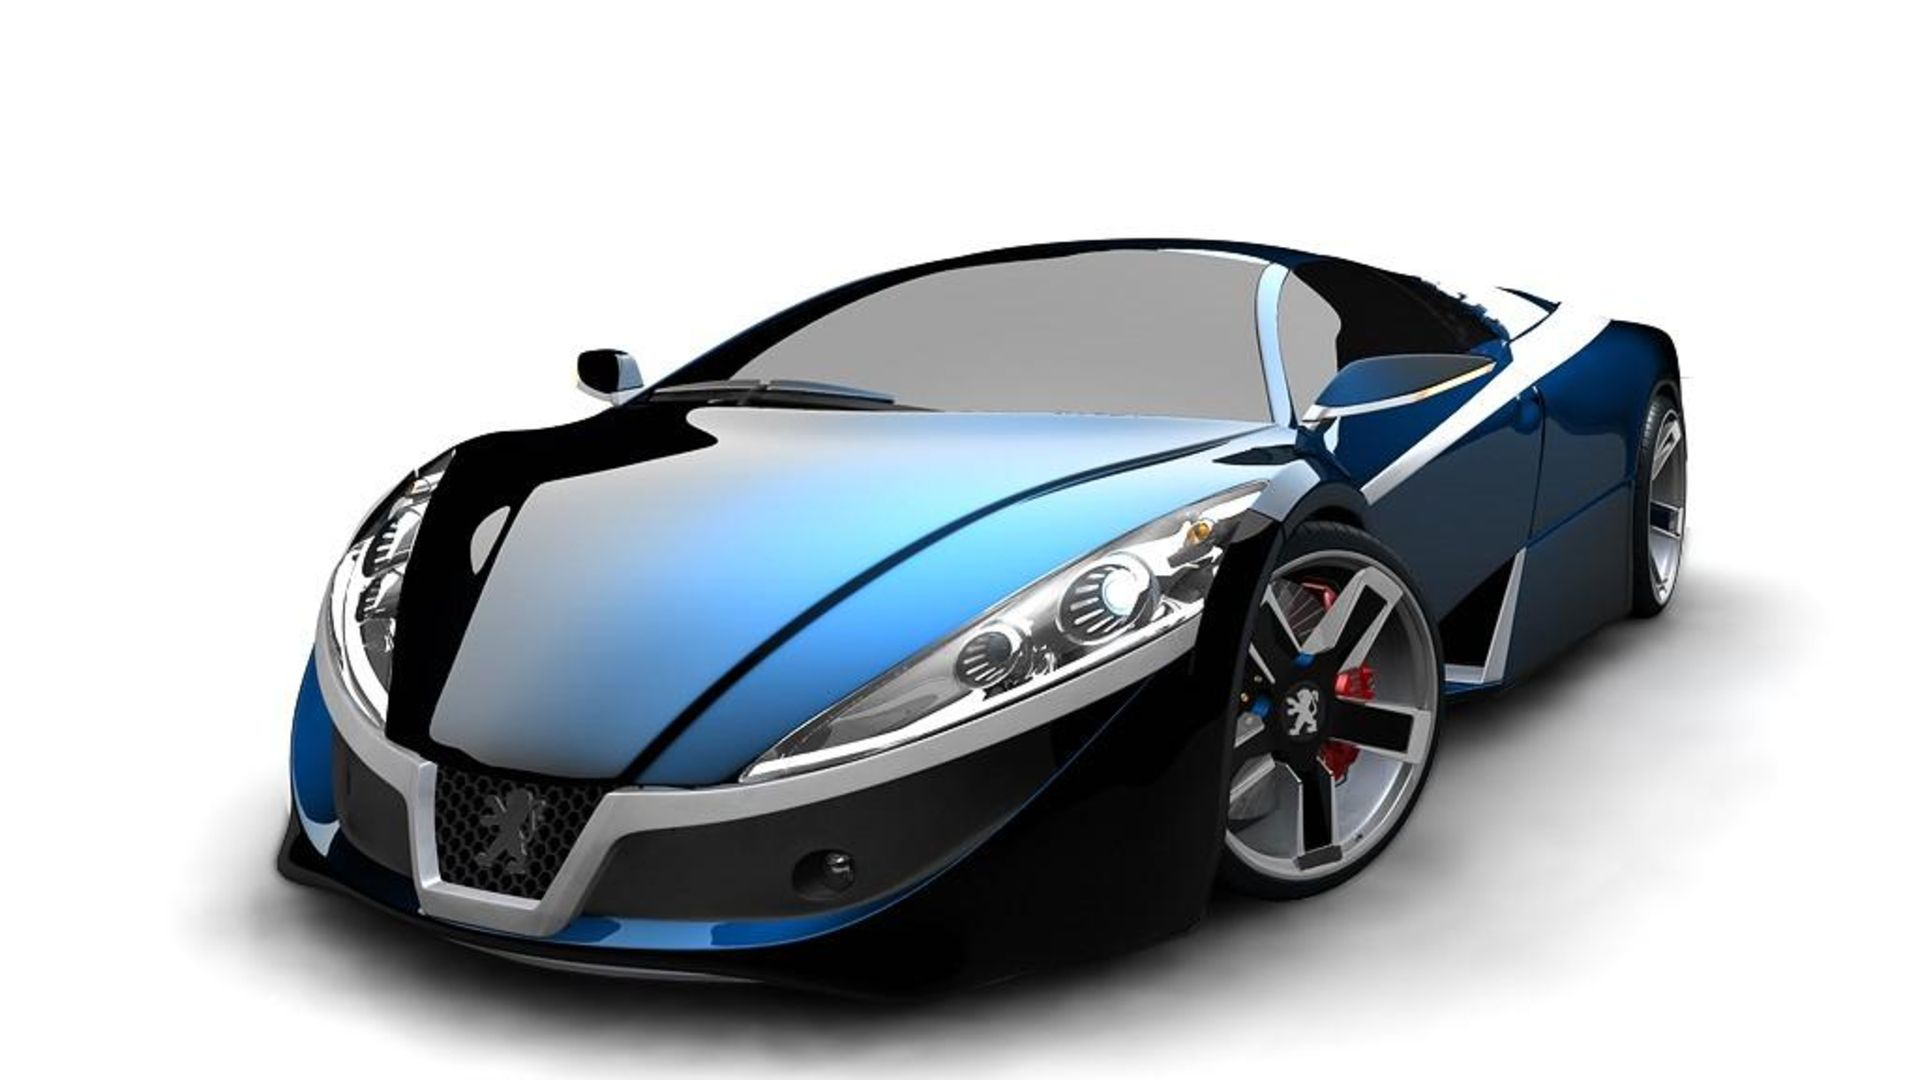 Cool Cars How About This Luxury Car Like It Have A Look At Much - Look at cool cars